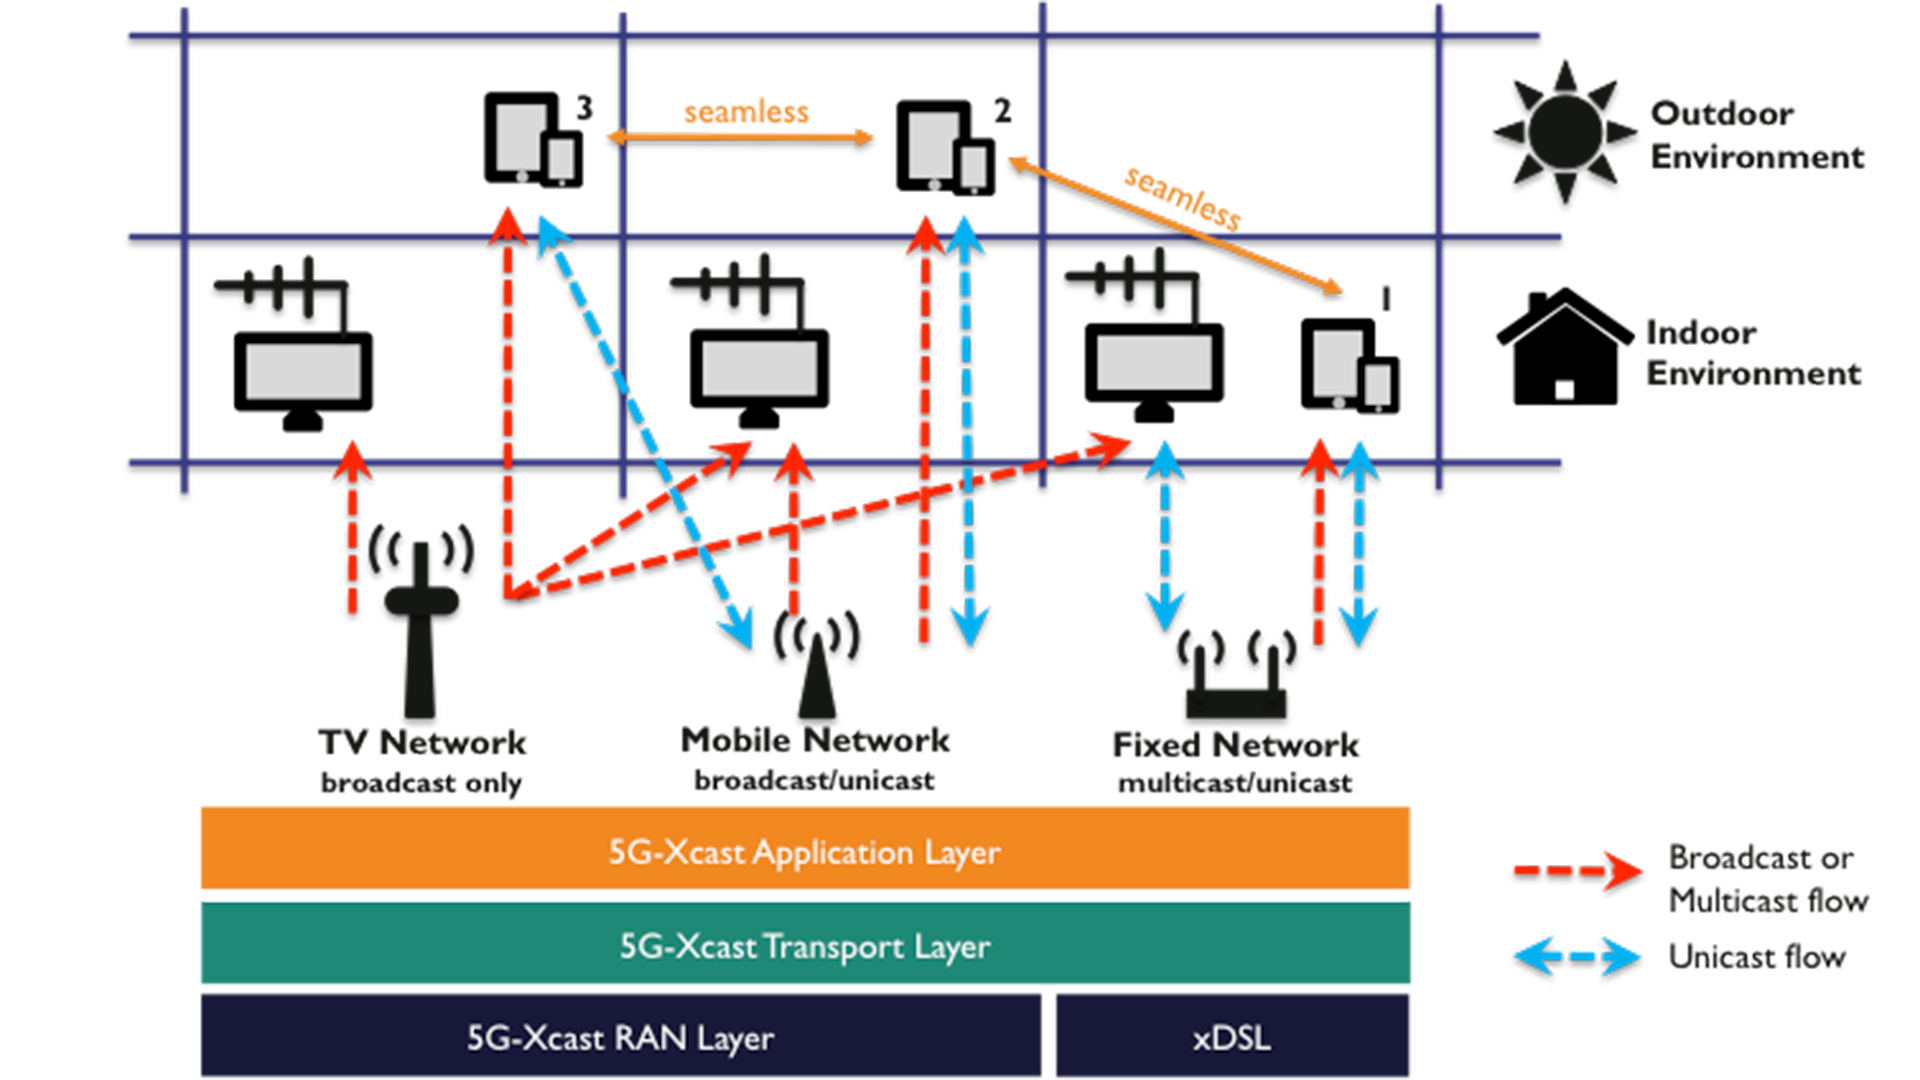 Design of the different layers involved in the 5G-Xast work.